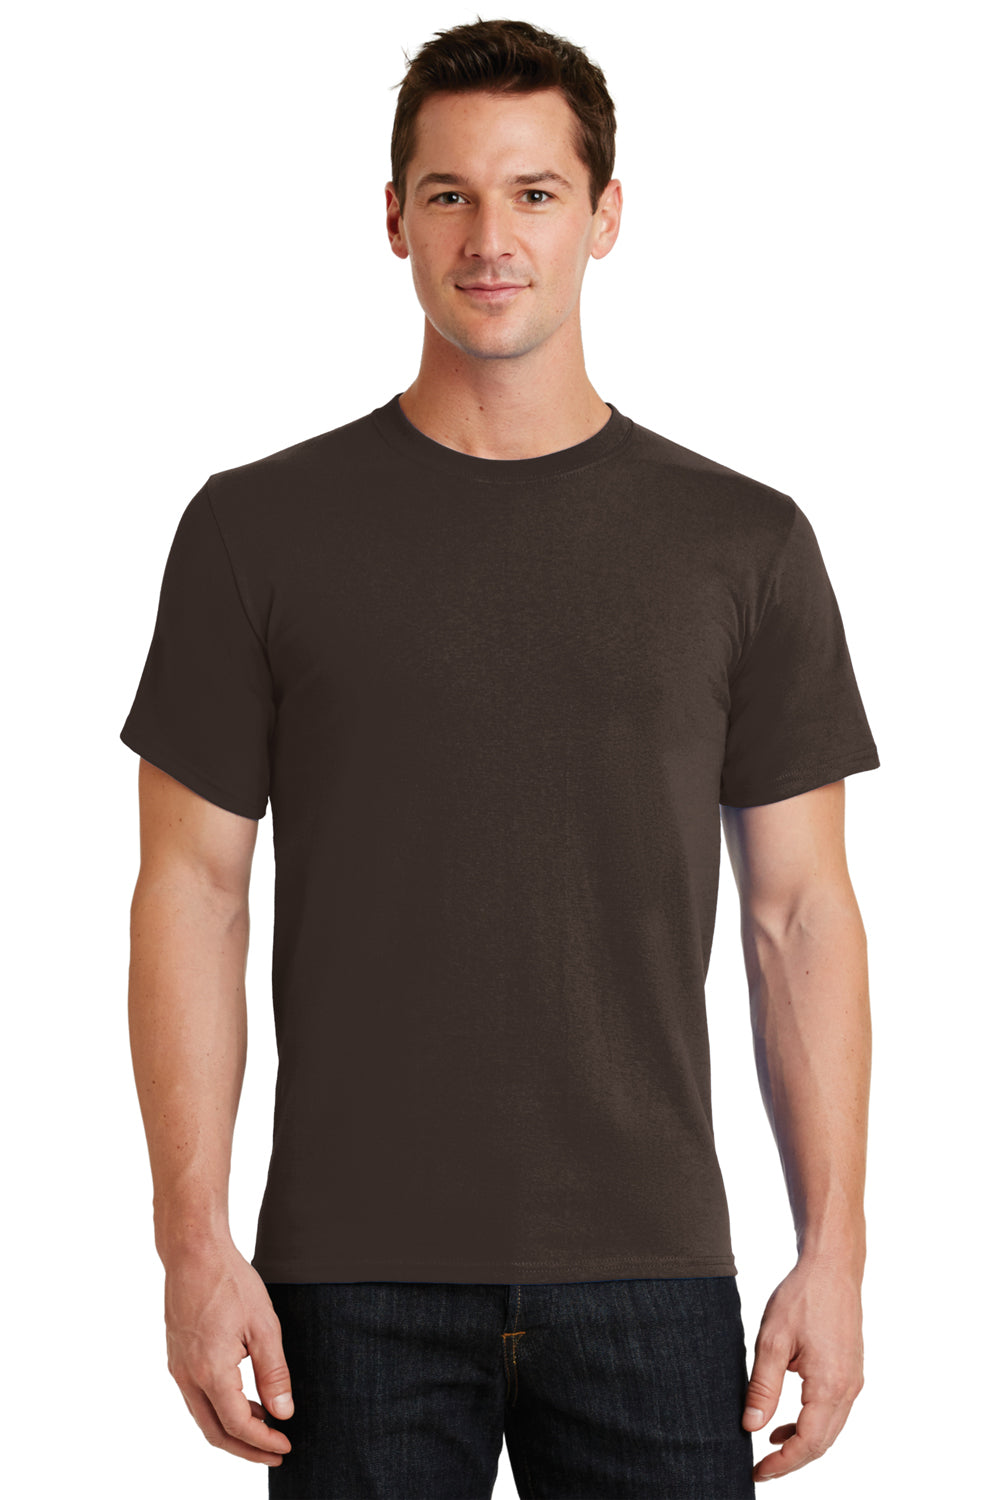 Port & Company PC61 Mens Essential Short Sleeve Crewneck T-Shirt Chocolate Brown Front